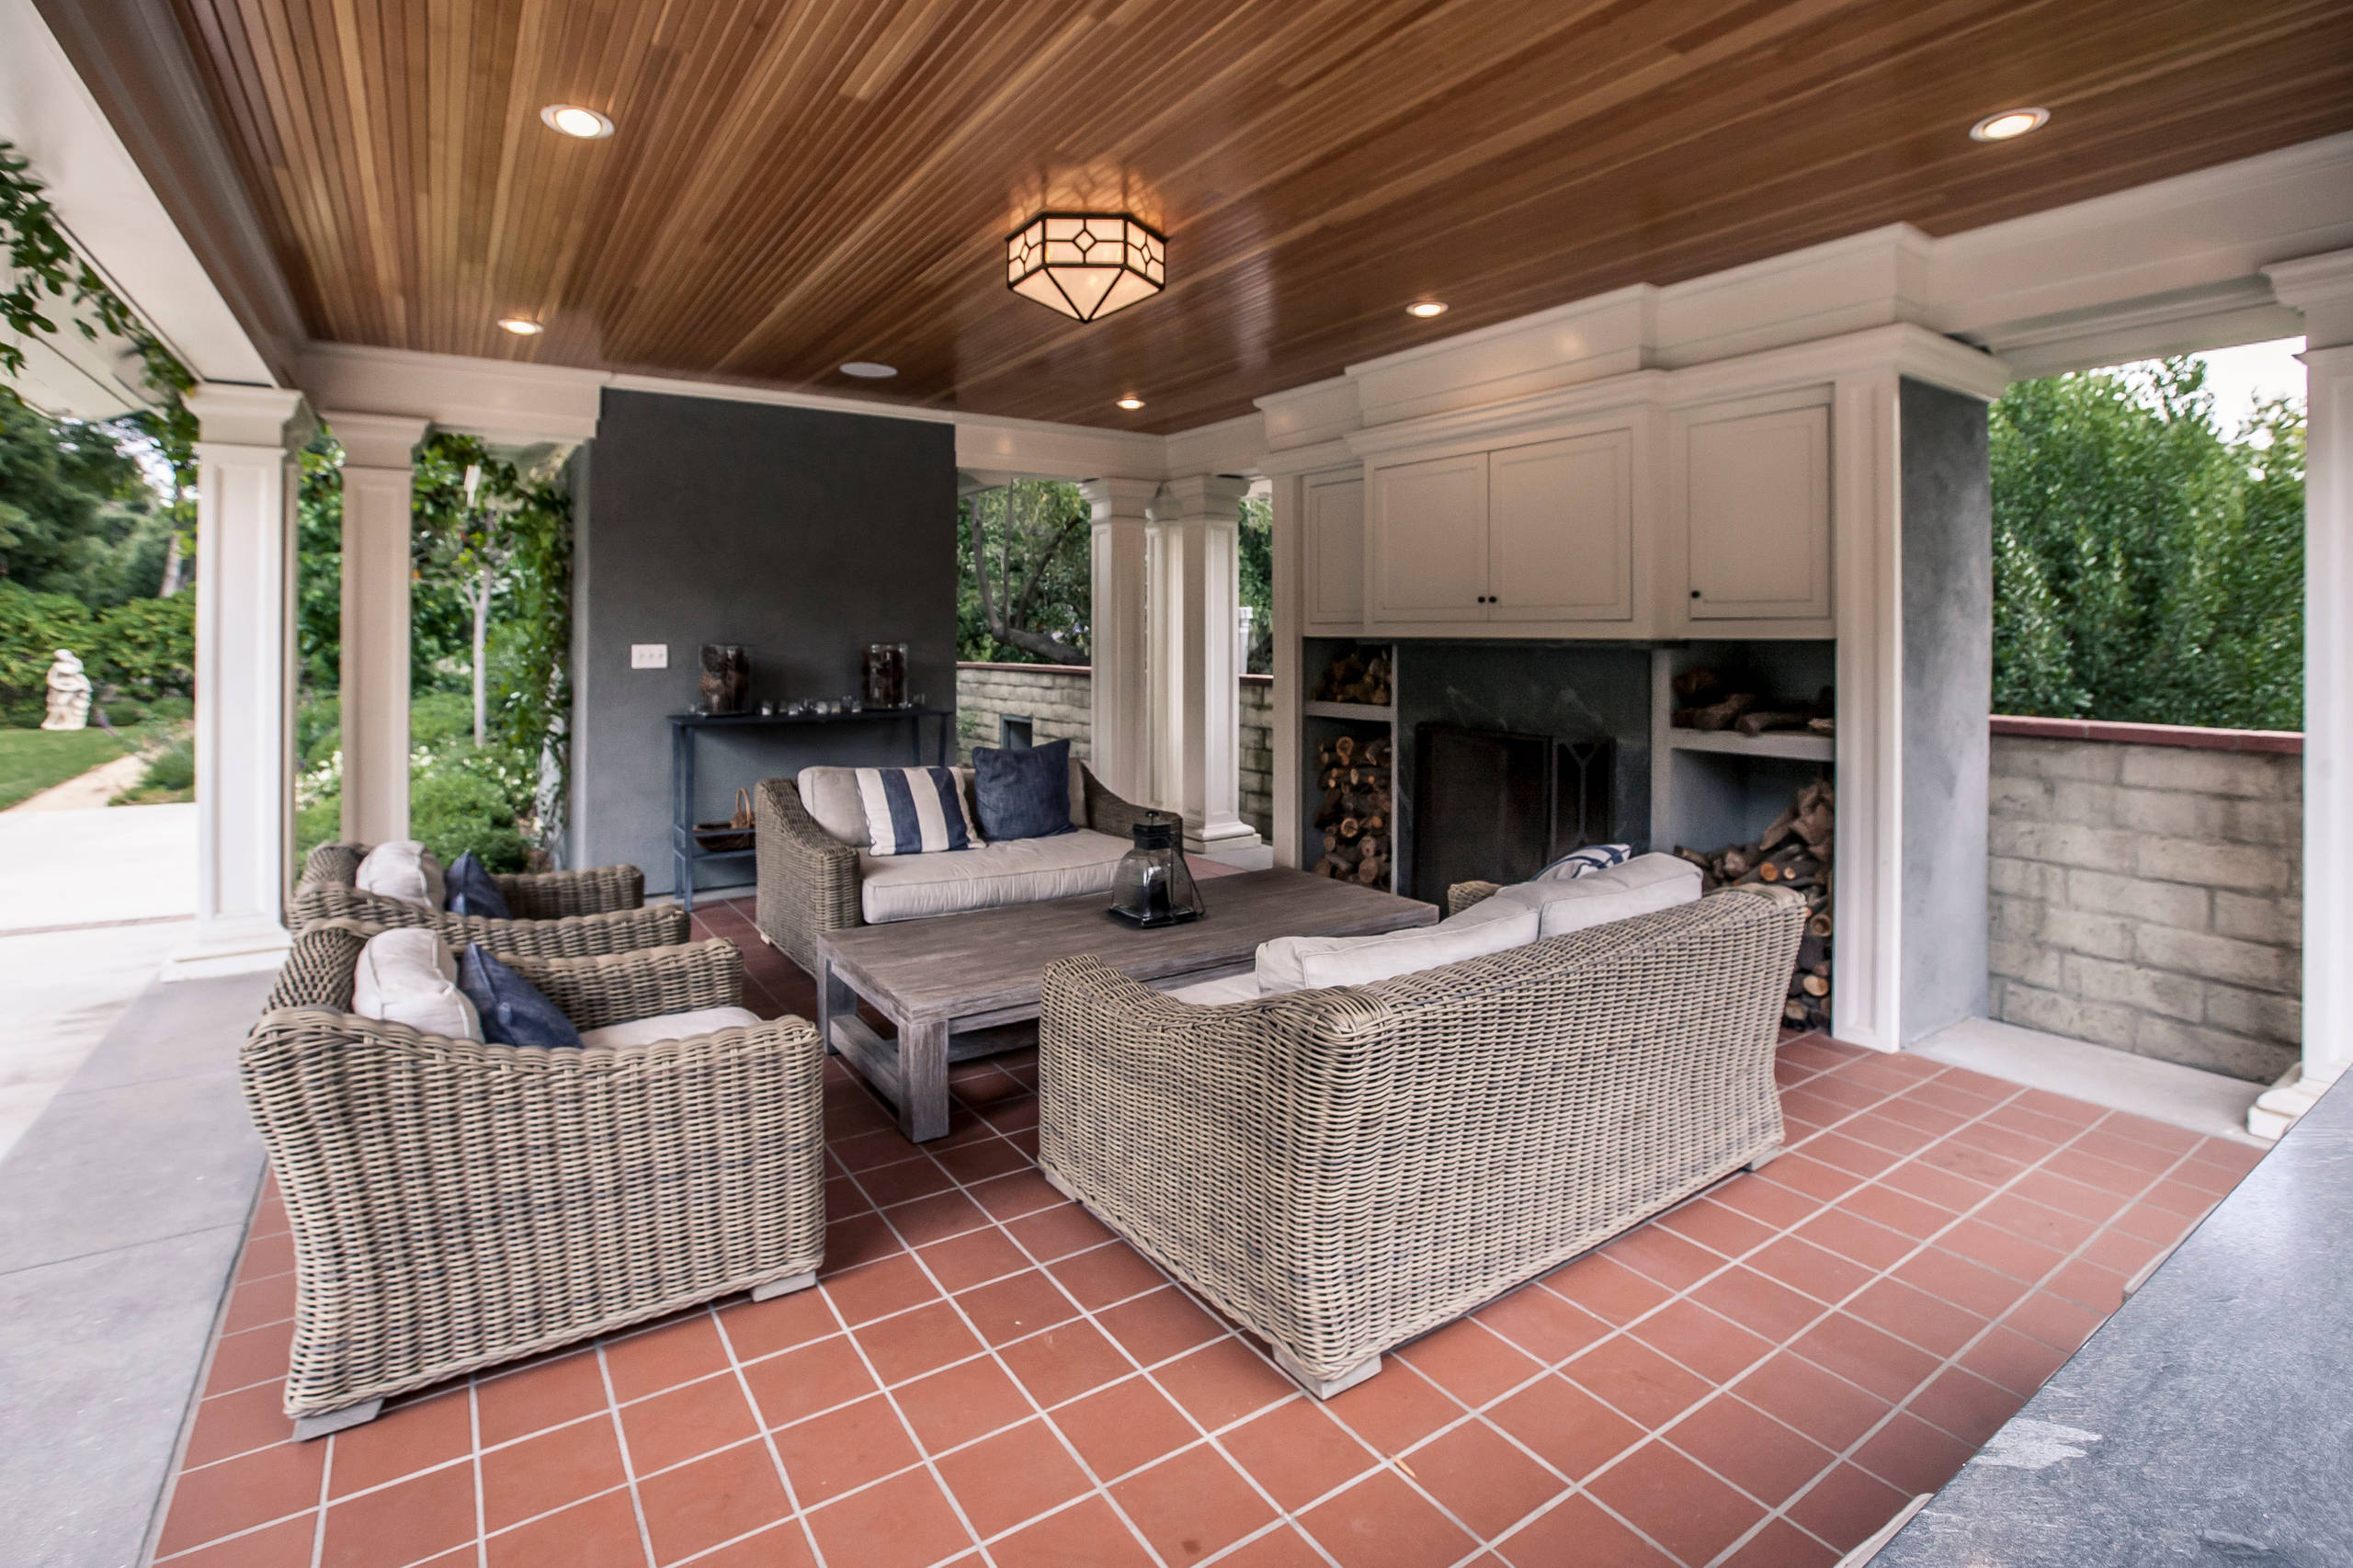 Renovations and Additions to a Historic G. Lawrence Stimson Estate in Pasadena